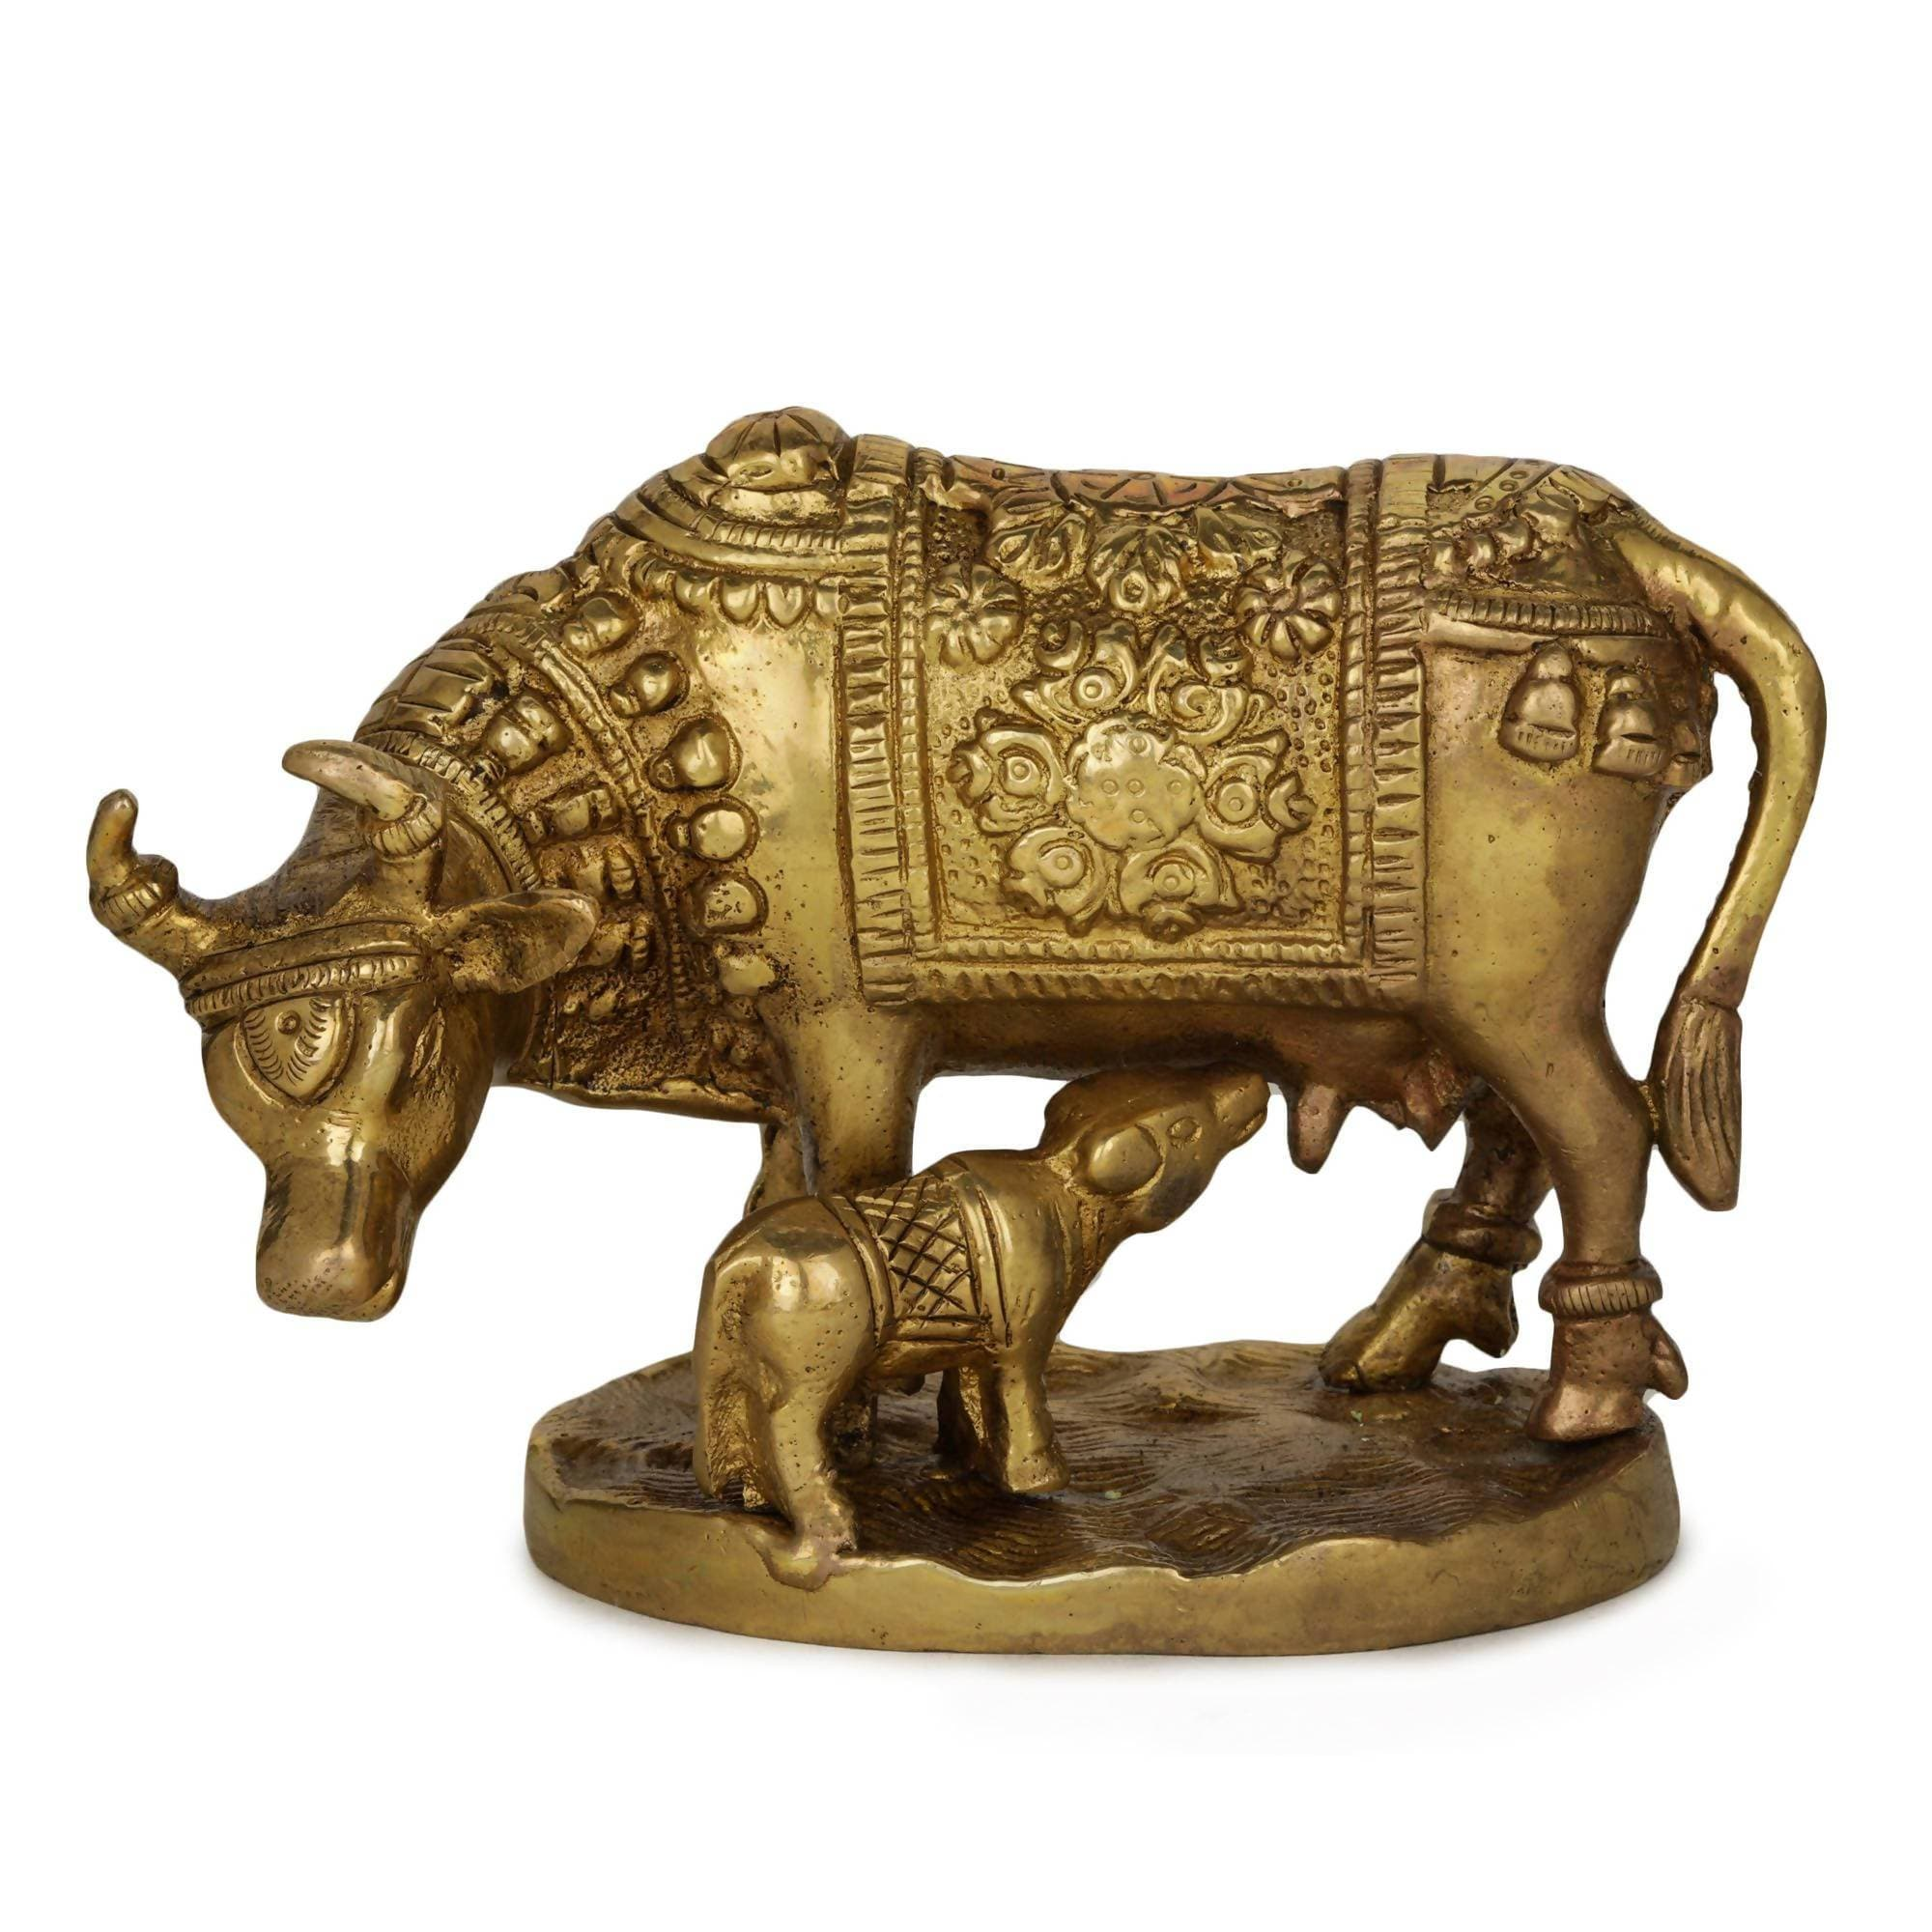 Devlok Lord Krishna's Kamdhenu Cow with Calf Idol